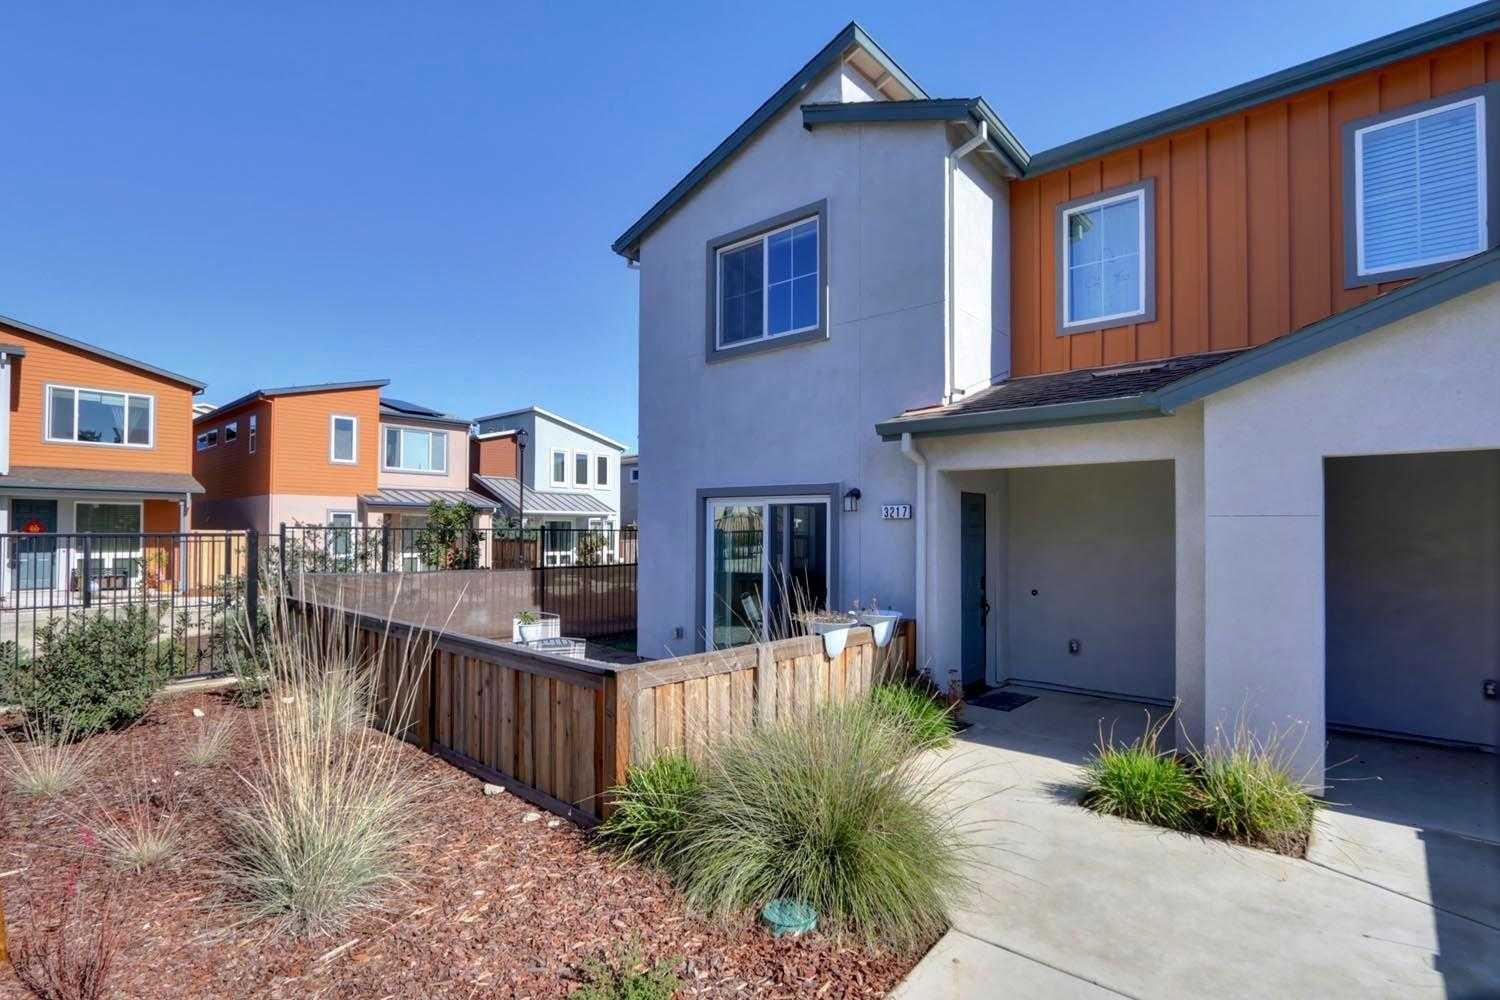 $380,356 - 3Br/3Ba -  for Sale in Davis